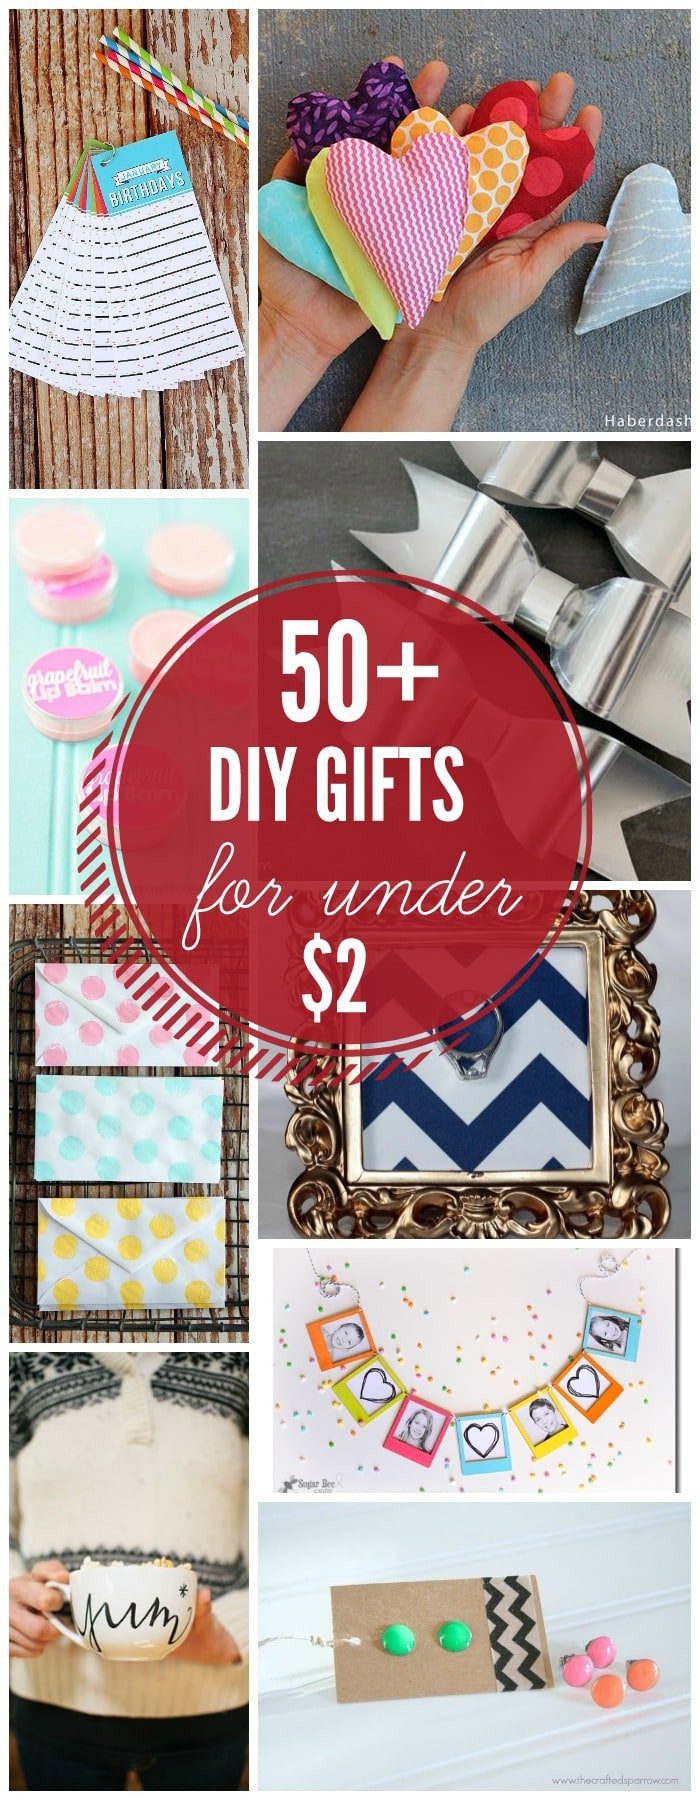 Christmas Gift Ideas For Couples Under 50  DIY Gifts Under $2